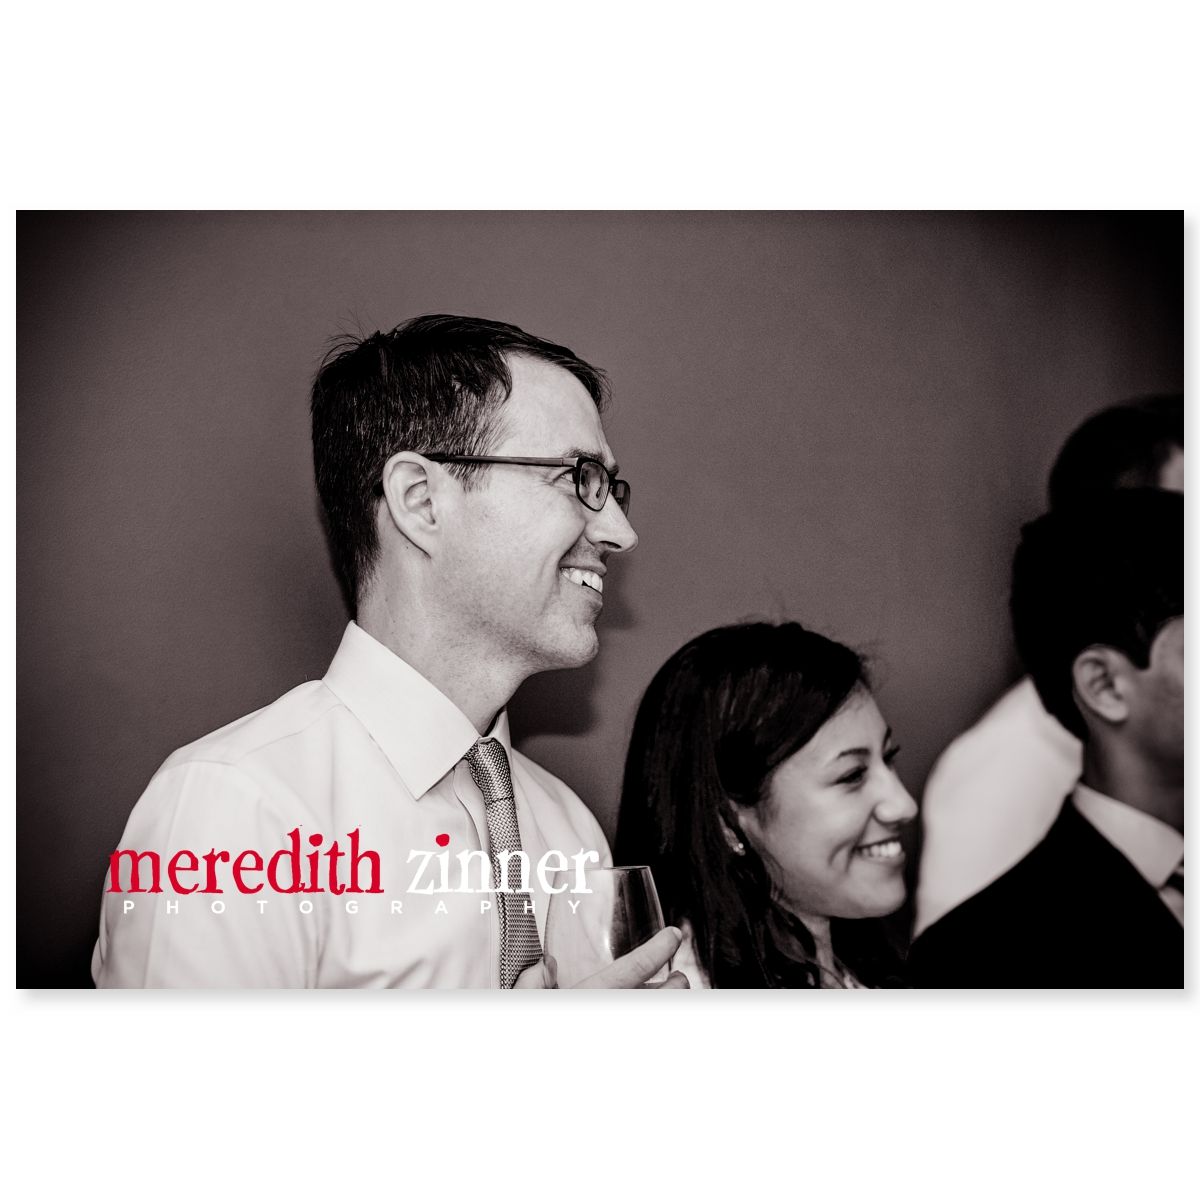 Meredith_Zinner_Photography_StilesCelebration_0301